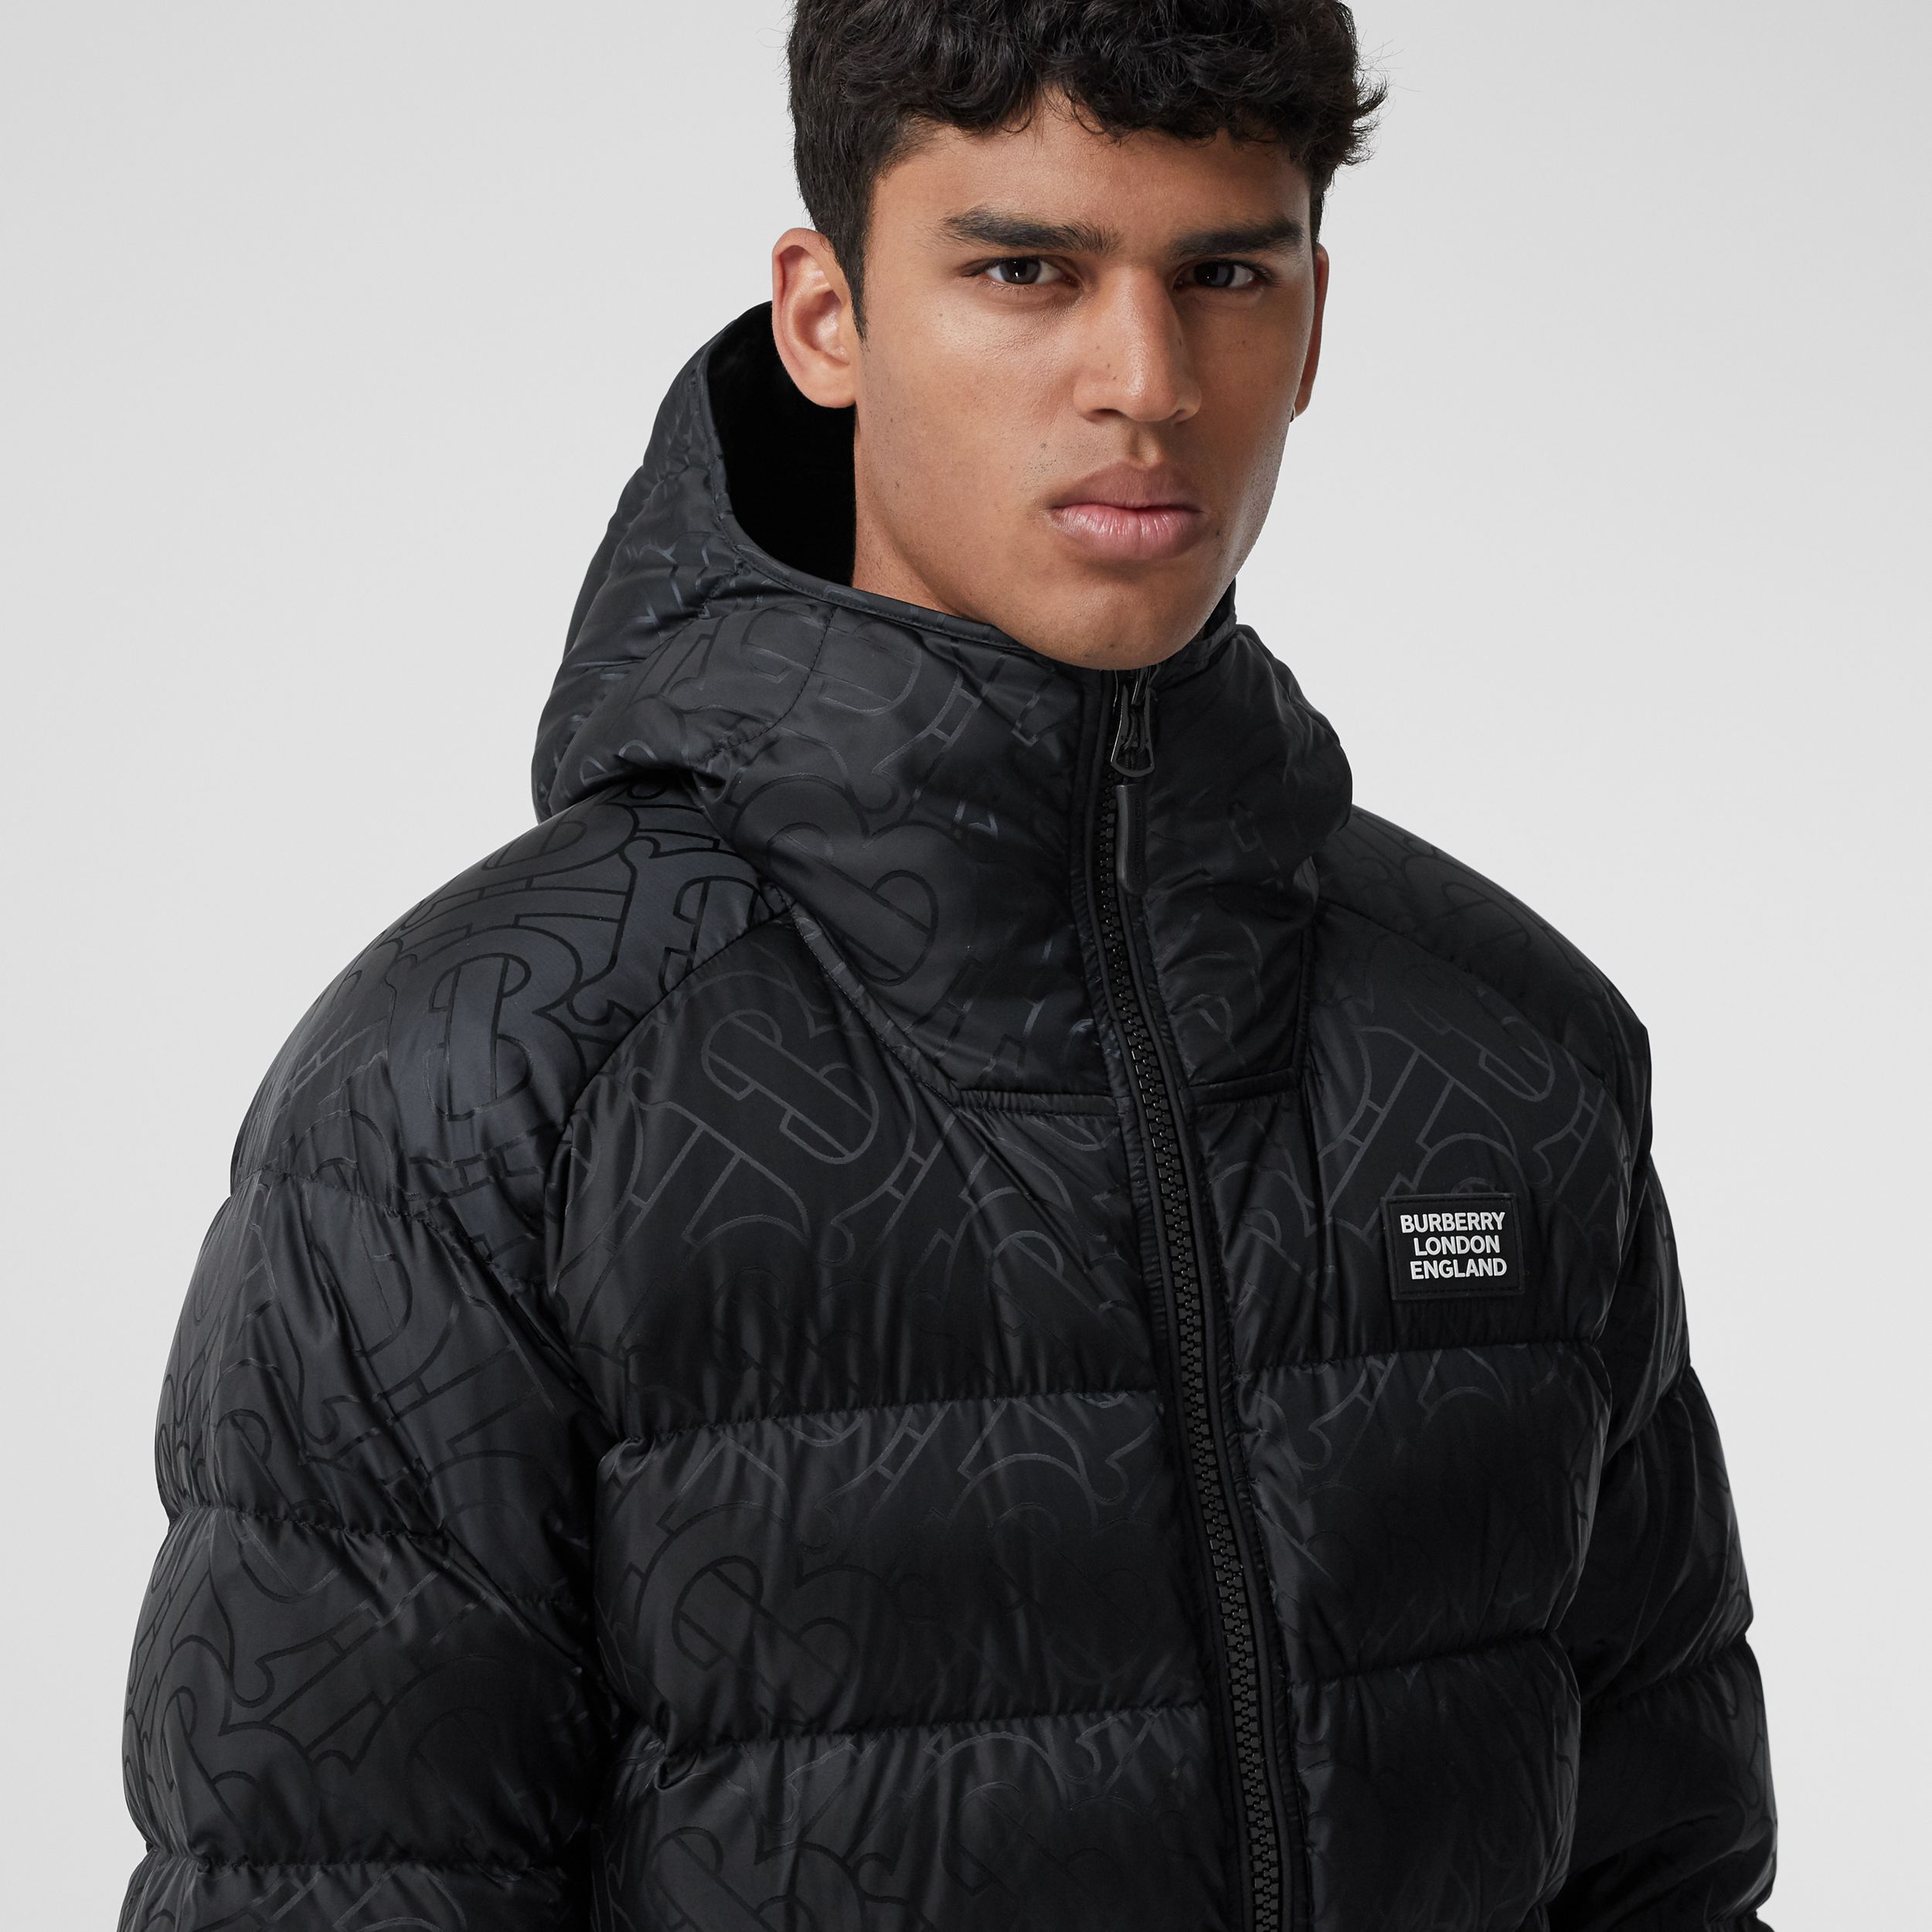 Monogram Jacquard Hooded Puffer Jacket in Black - Men | Burberry United States - 2